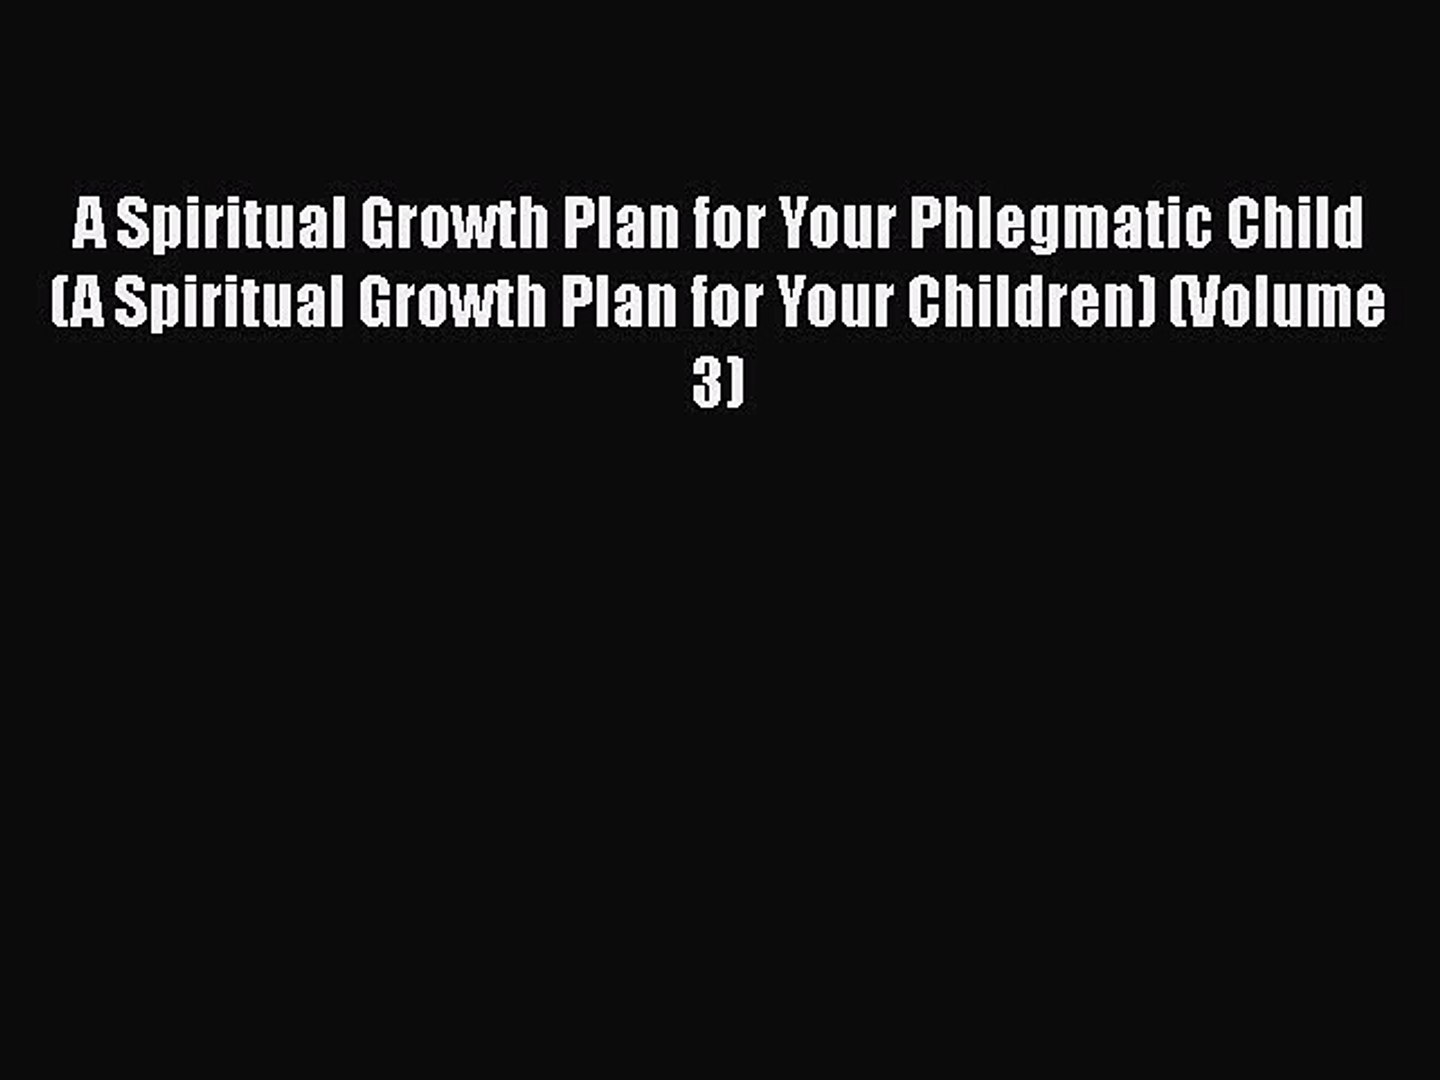 Read A Spiritual Growth Plan for Your Phlegmatic Child (A Spiritual Growth Plan for Your Children)